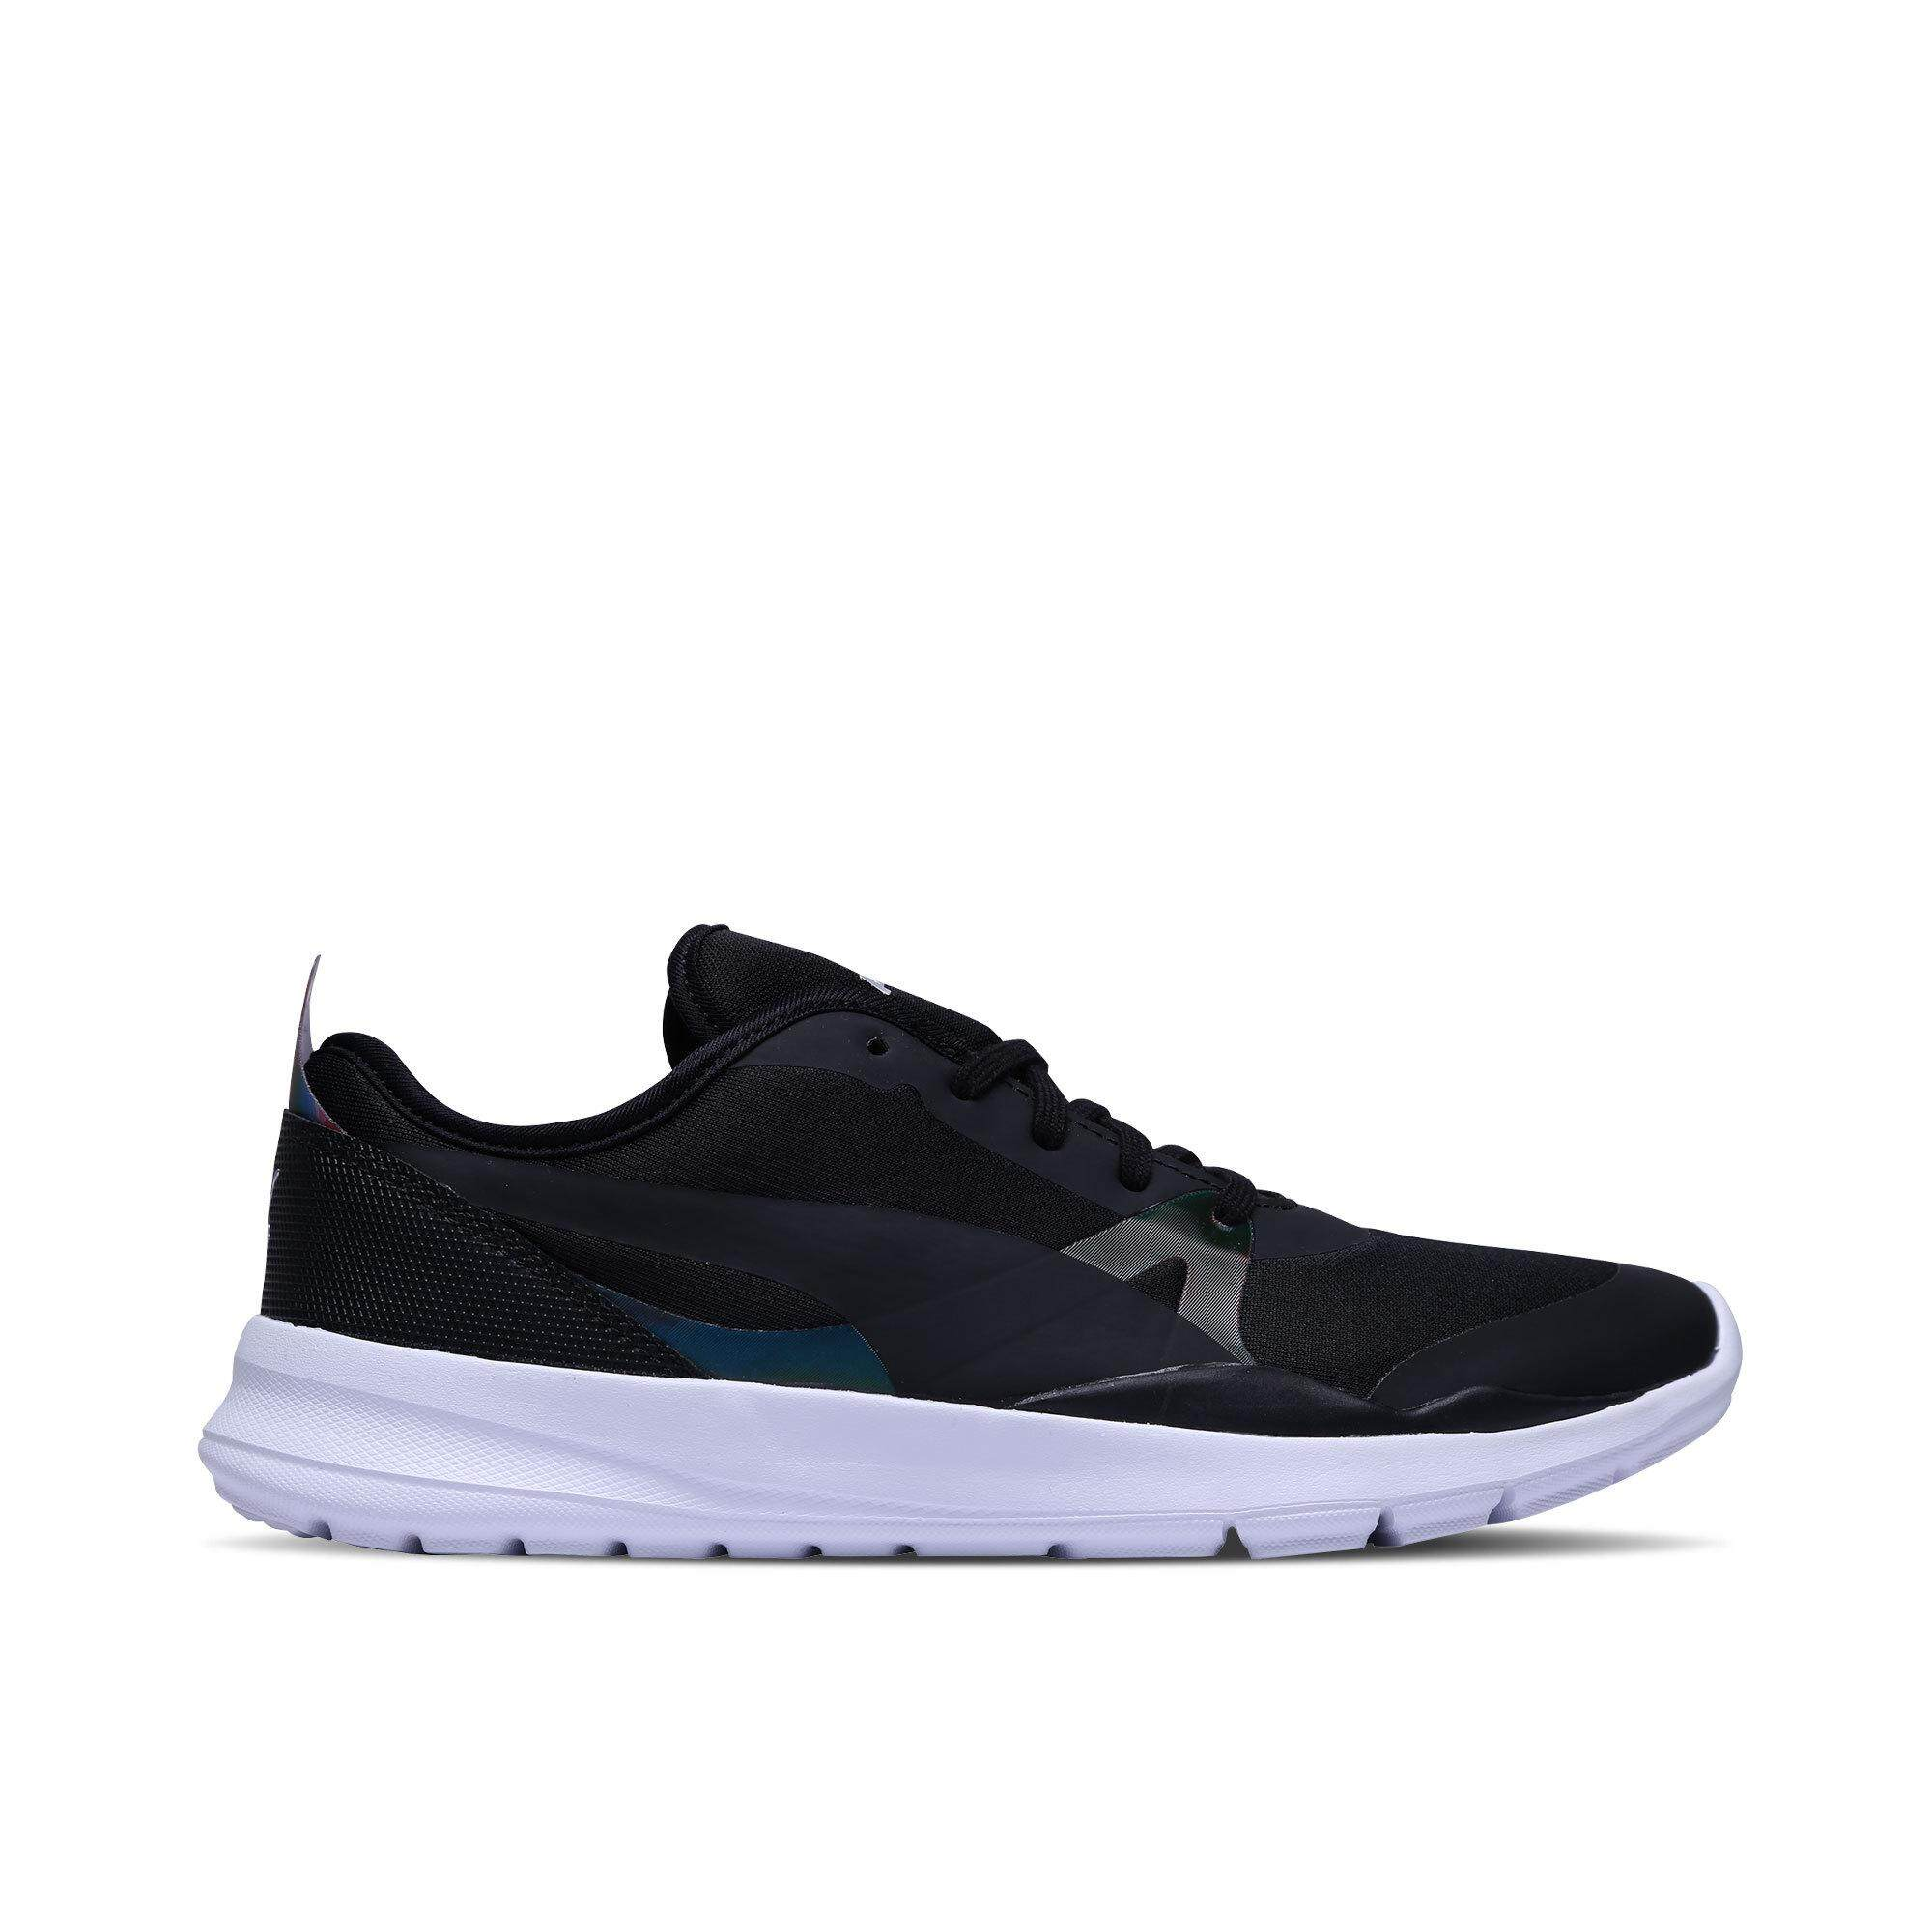 753f252001106d PUMA Puma Shoppe Women s Shoes Athletic Shoes Summer Light Breathable  Cushioning Jogging Casual Shoes 362738